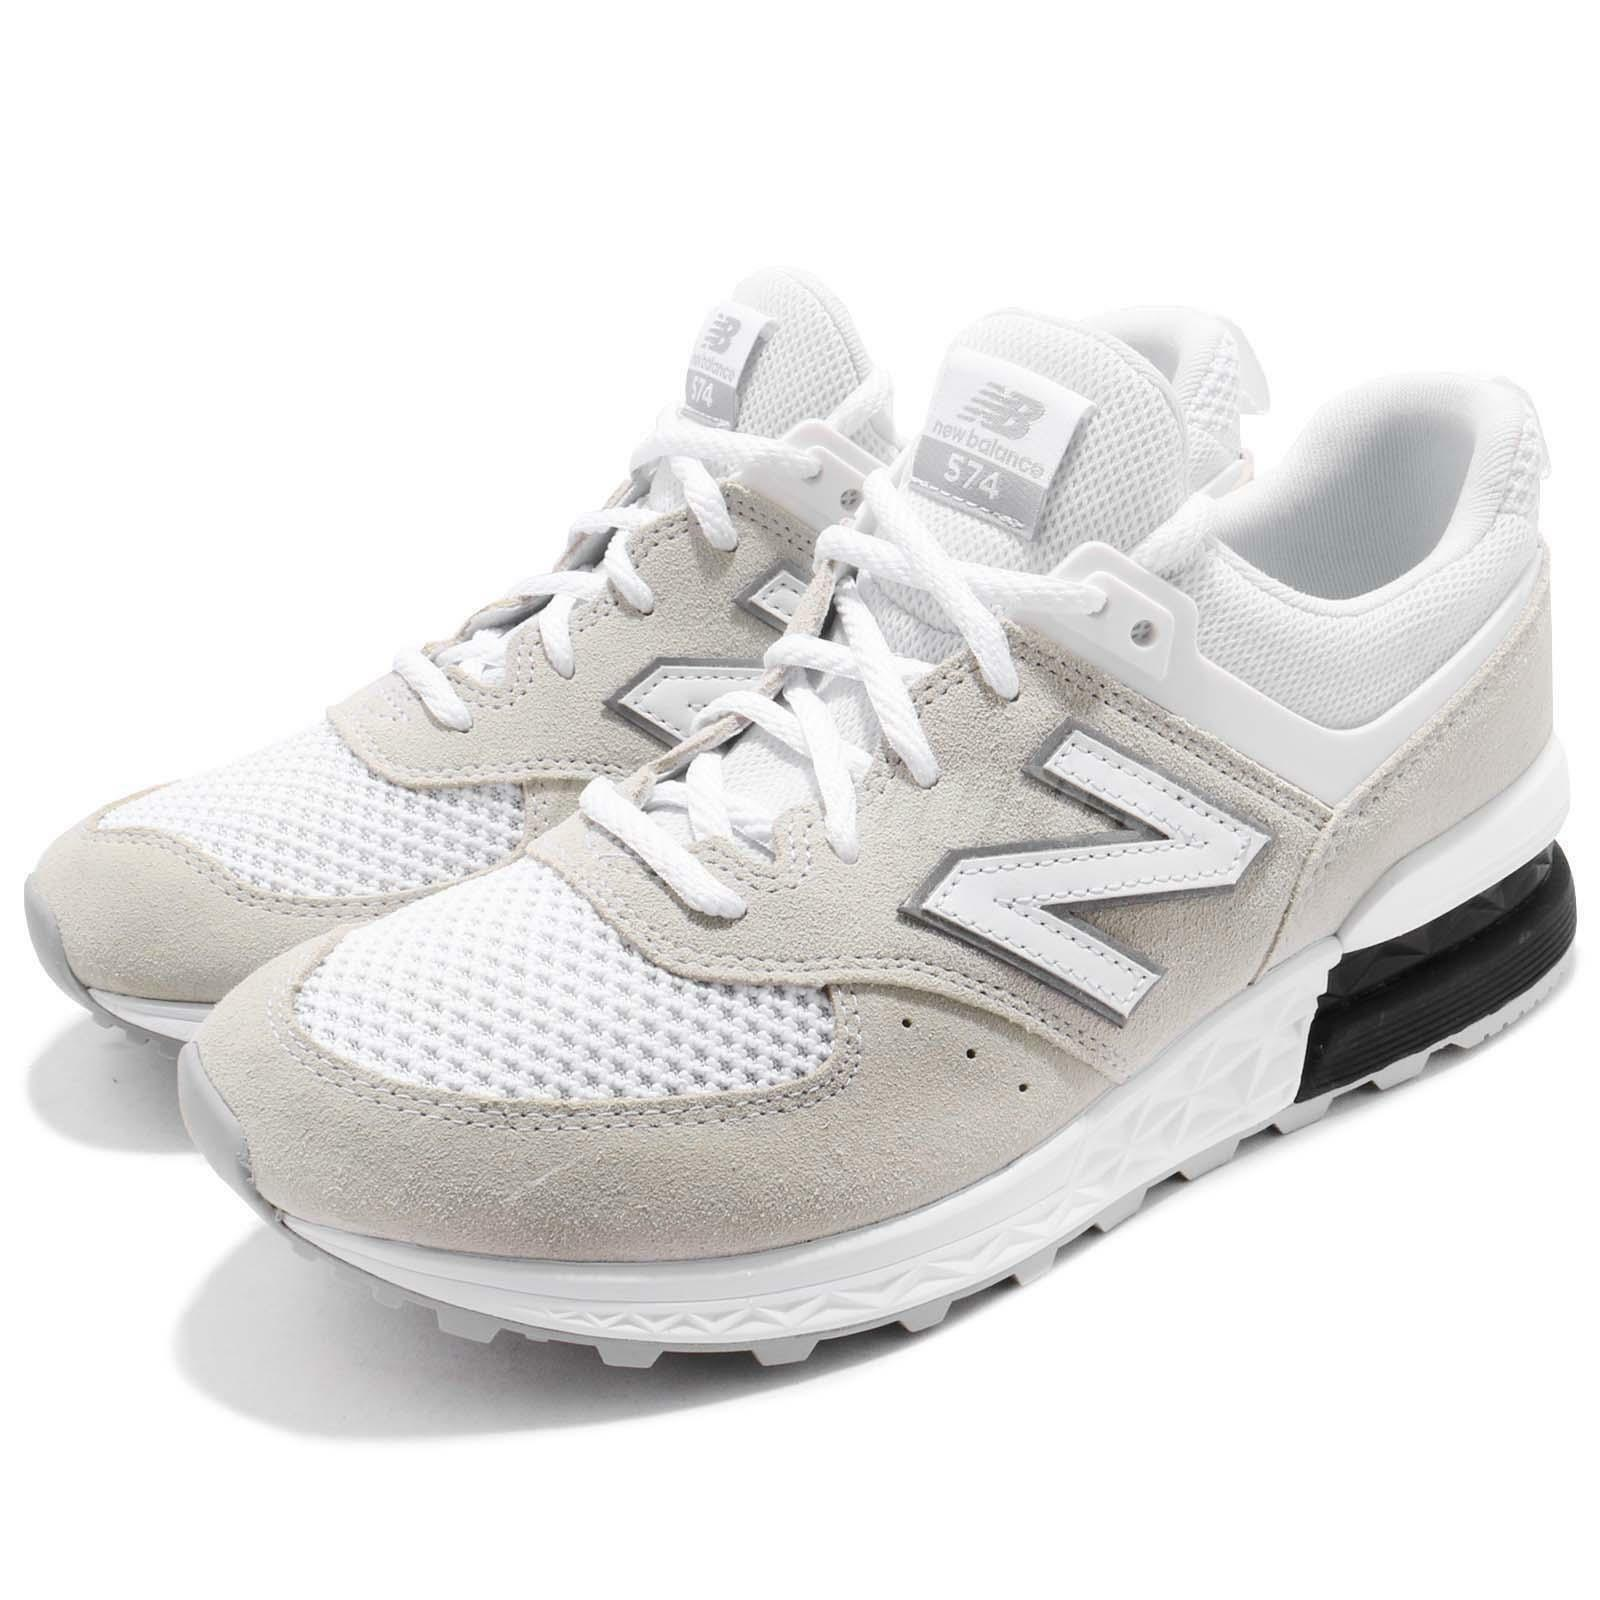 New Balance MS574STW D Grey White Men Running shoes Sneakers MS574STWD